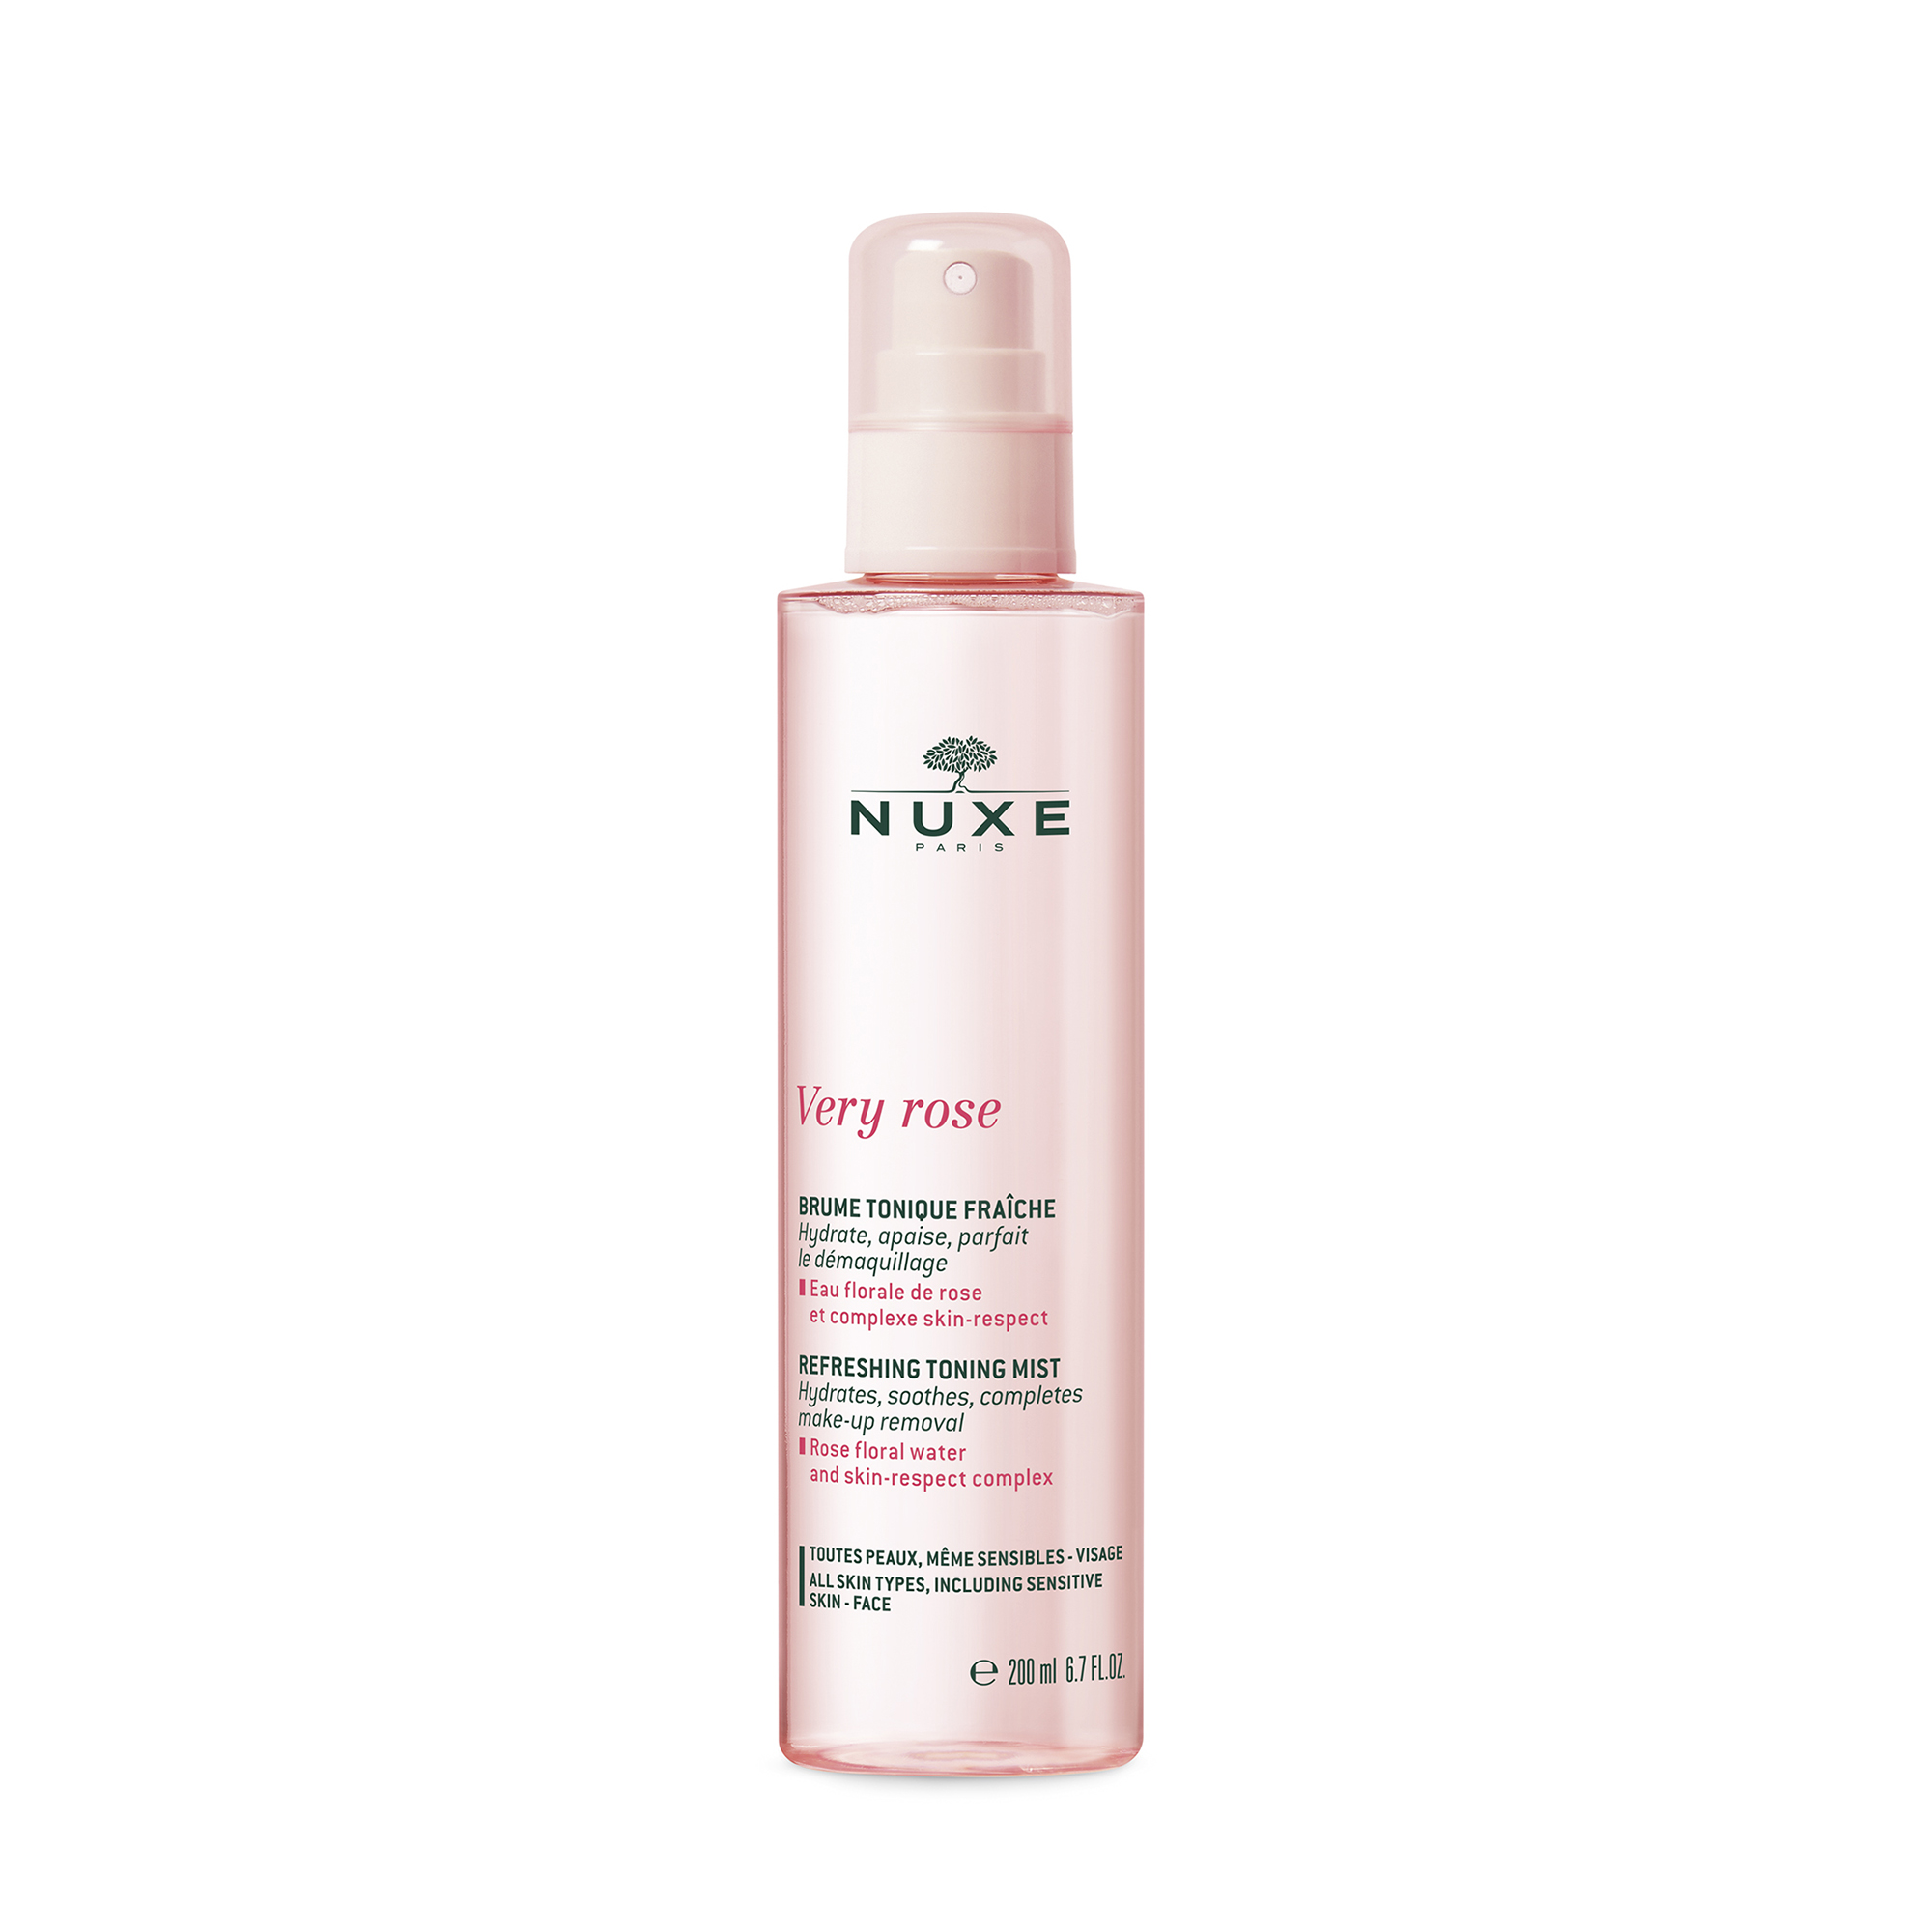 Nuxe Very Rose Refreshing Tonning Mist, 200 ml